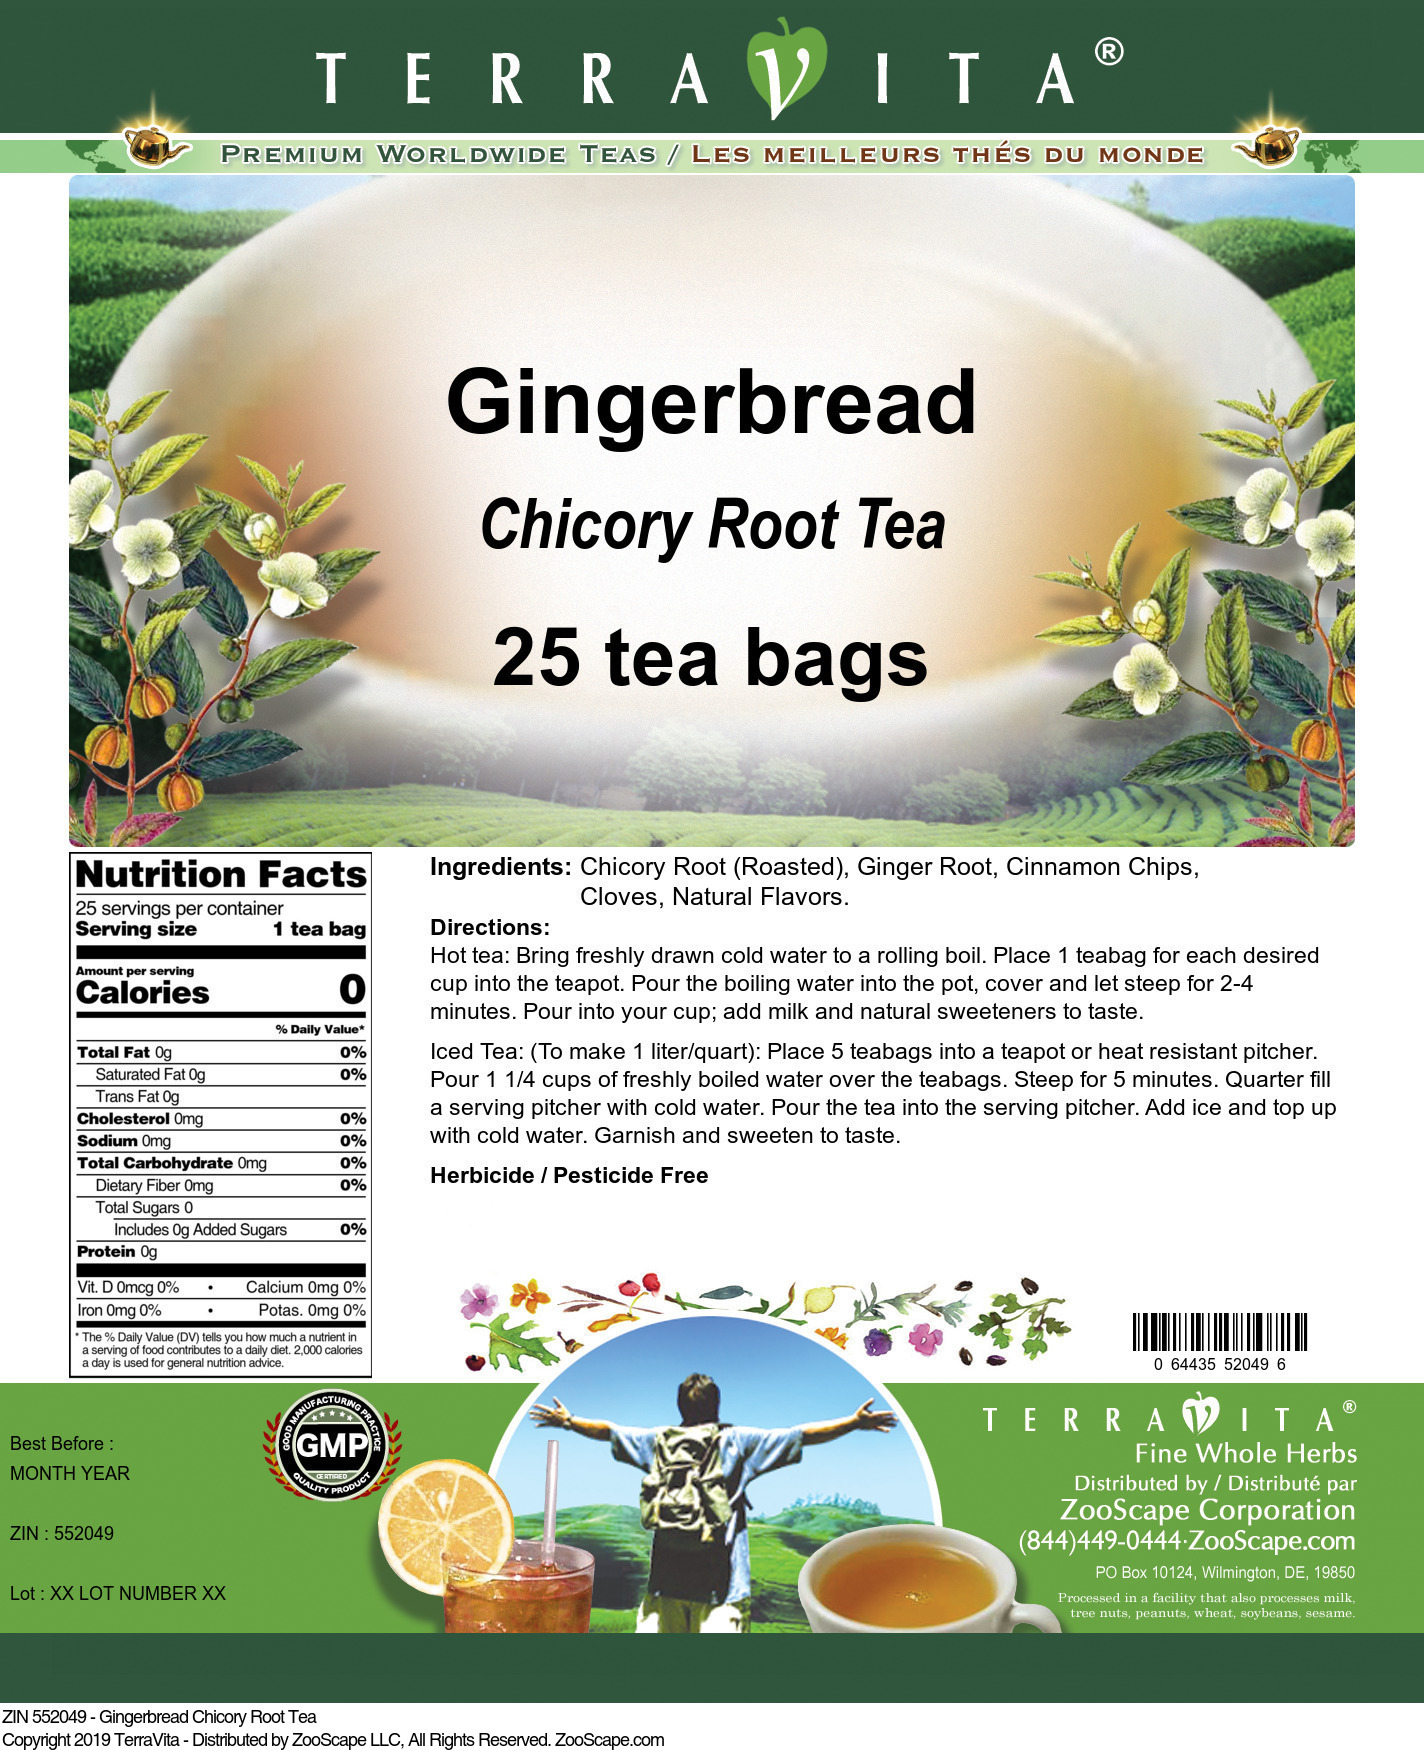 Gingerbread Chicory Root Tea